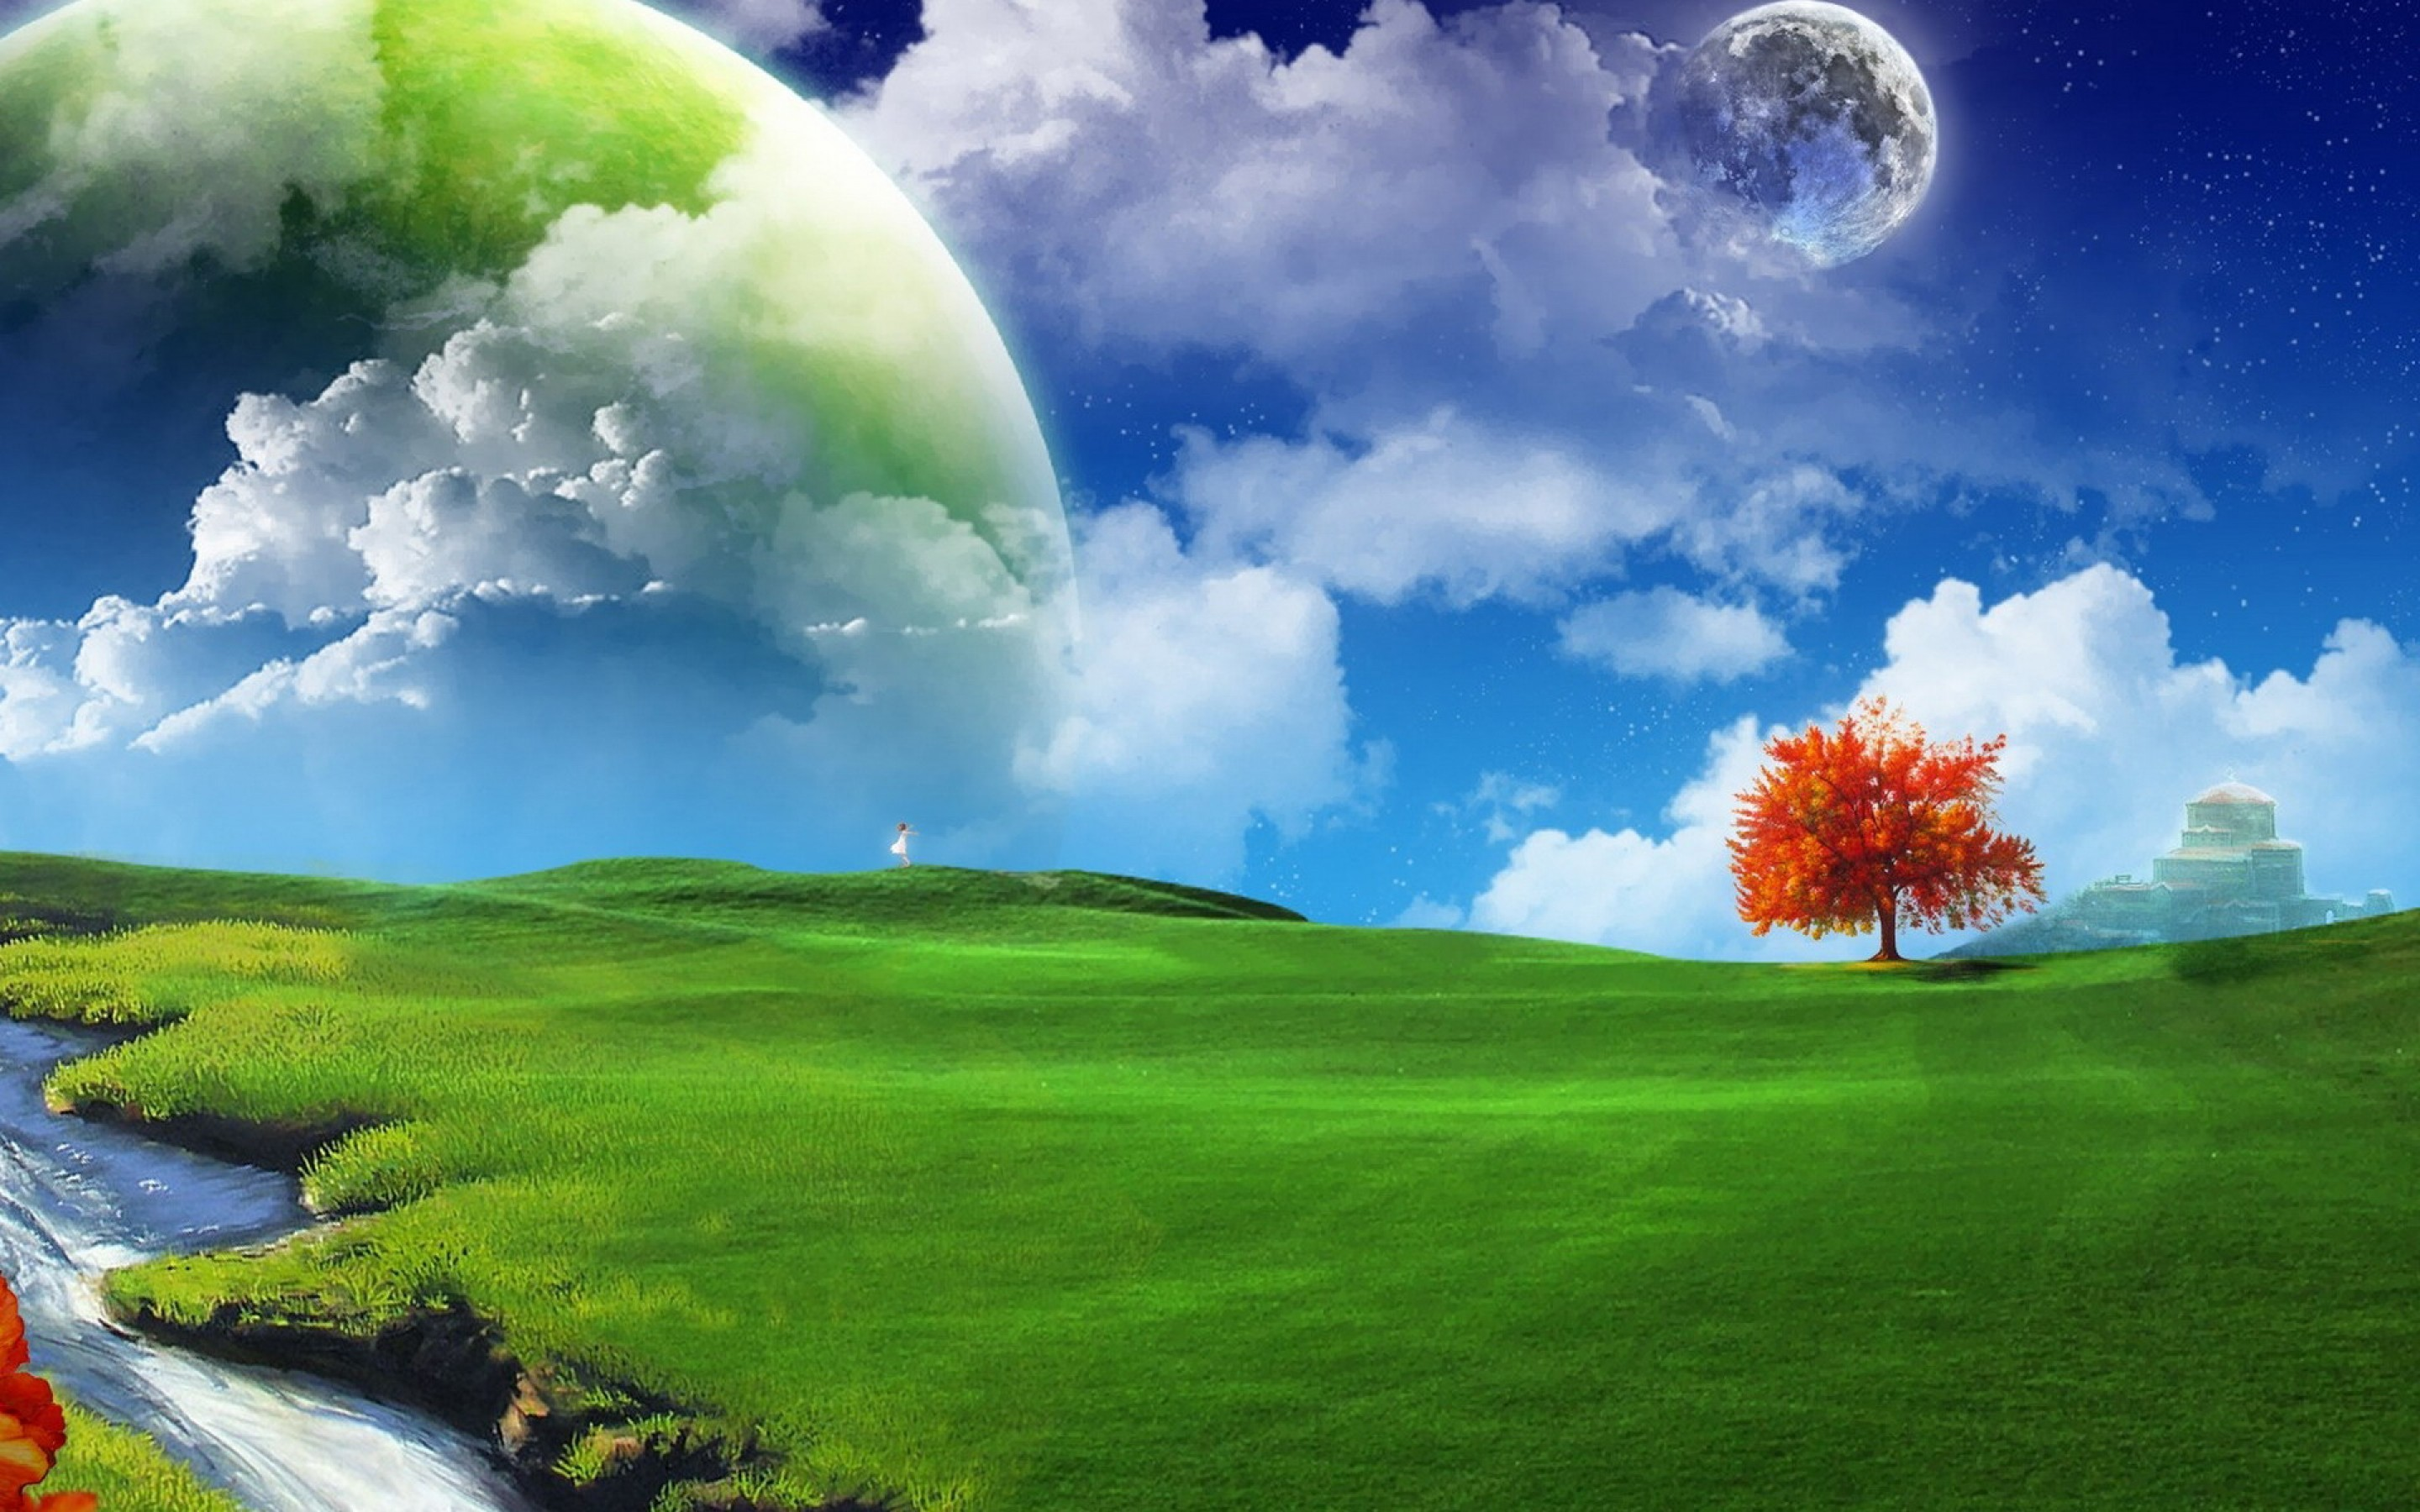 Download 40 HD Laptop Wallpaper Backgrounds For 2880x1800